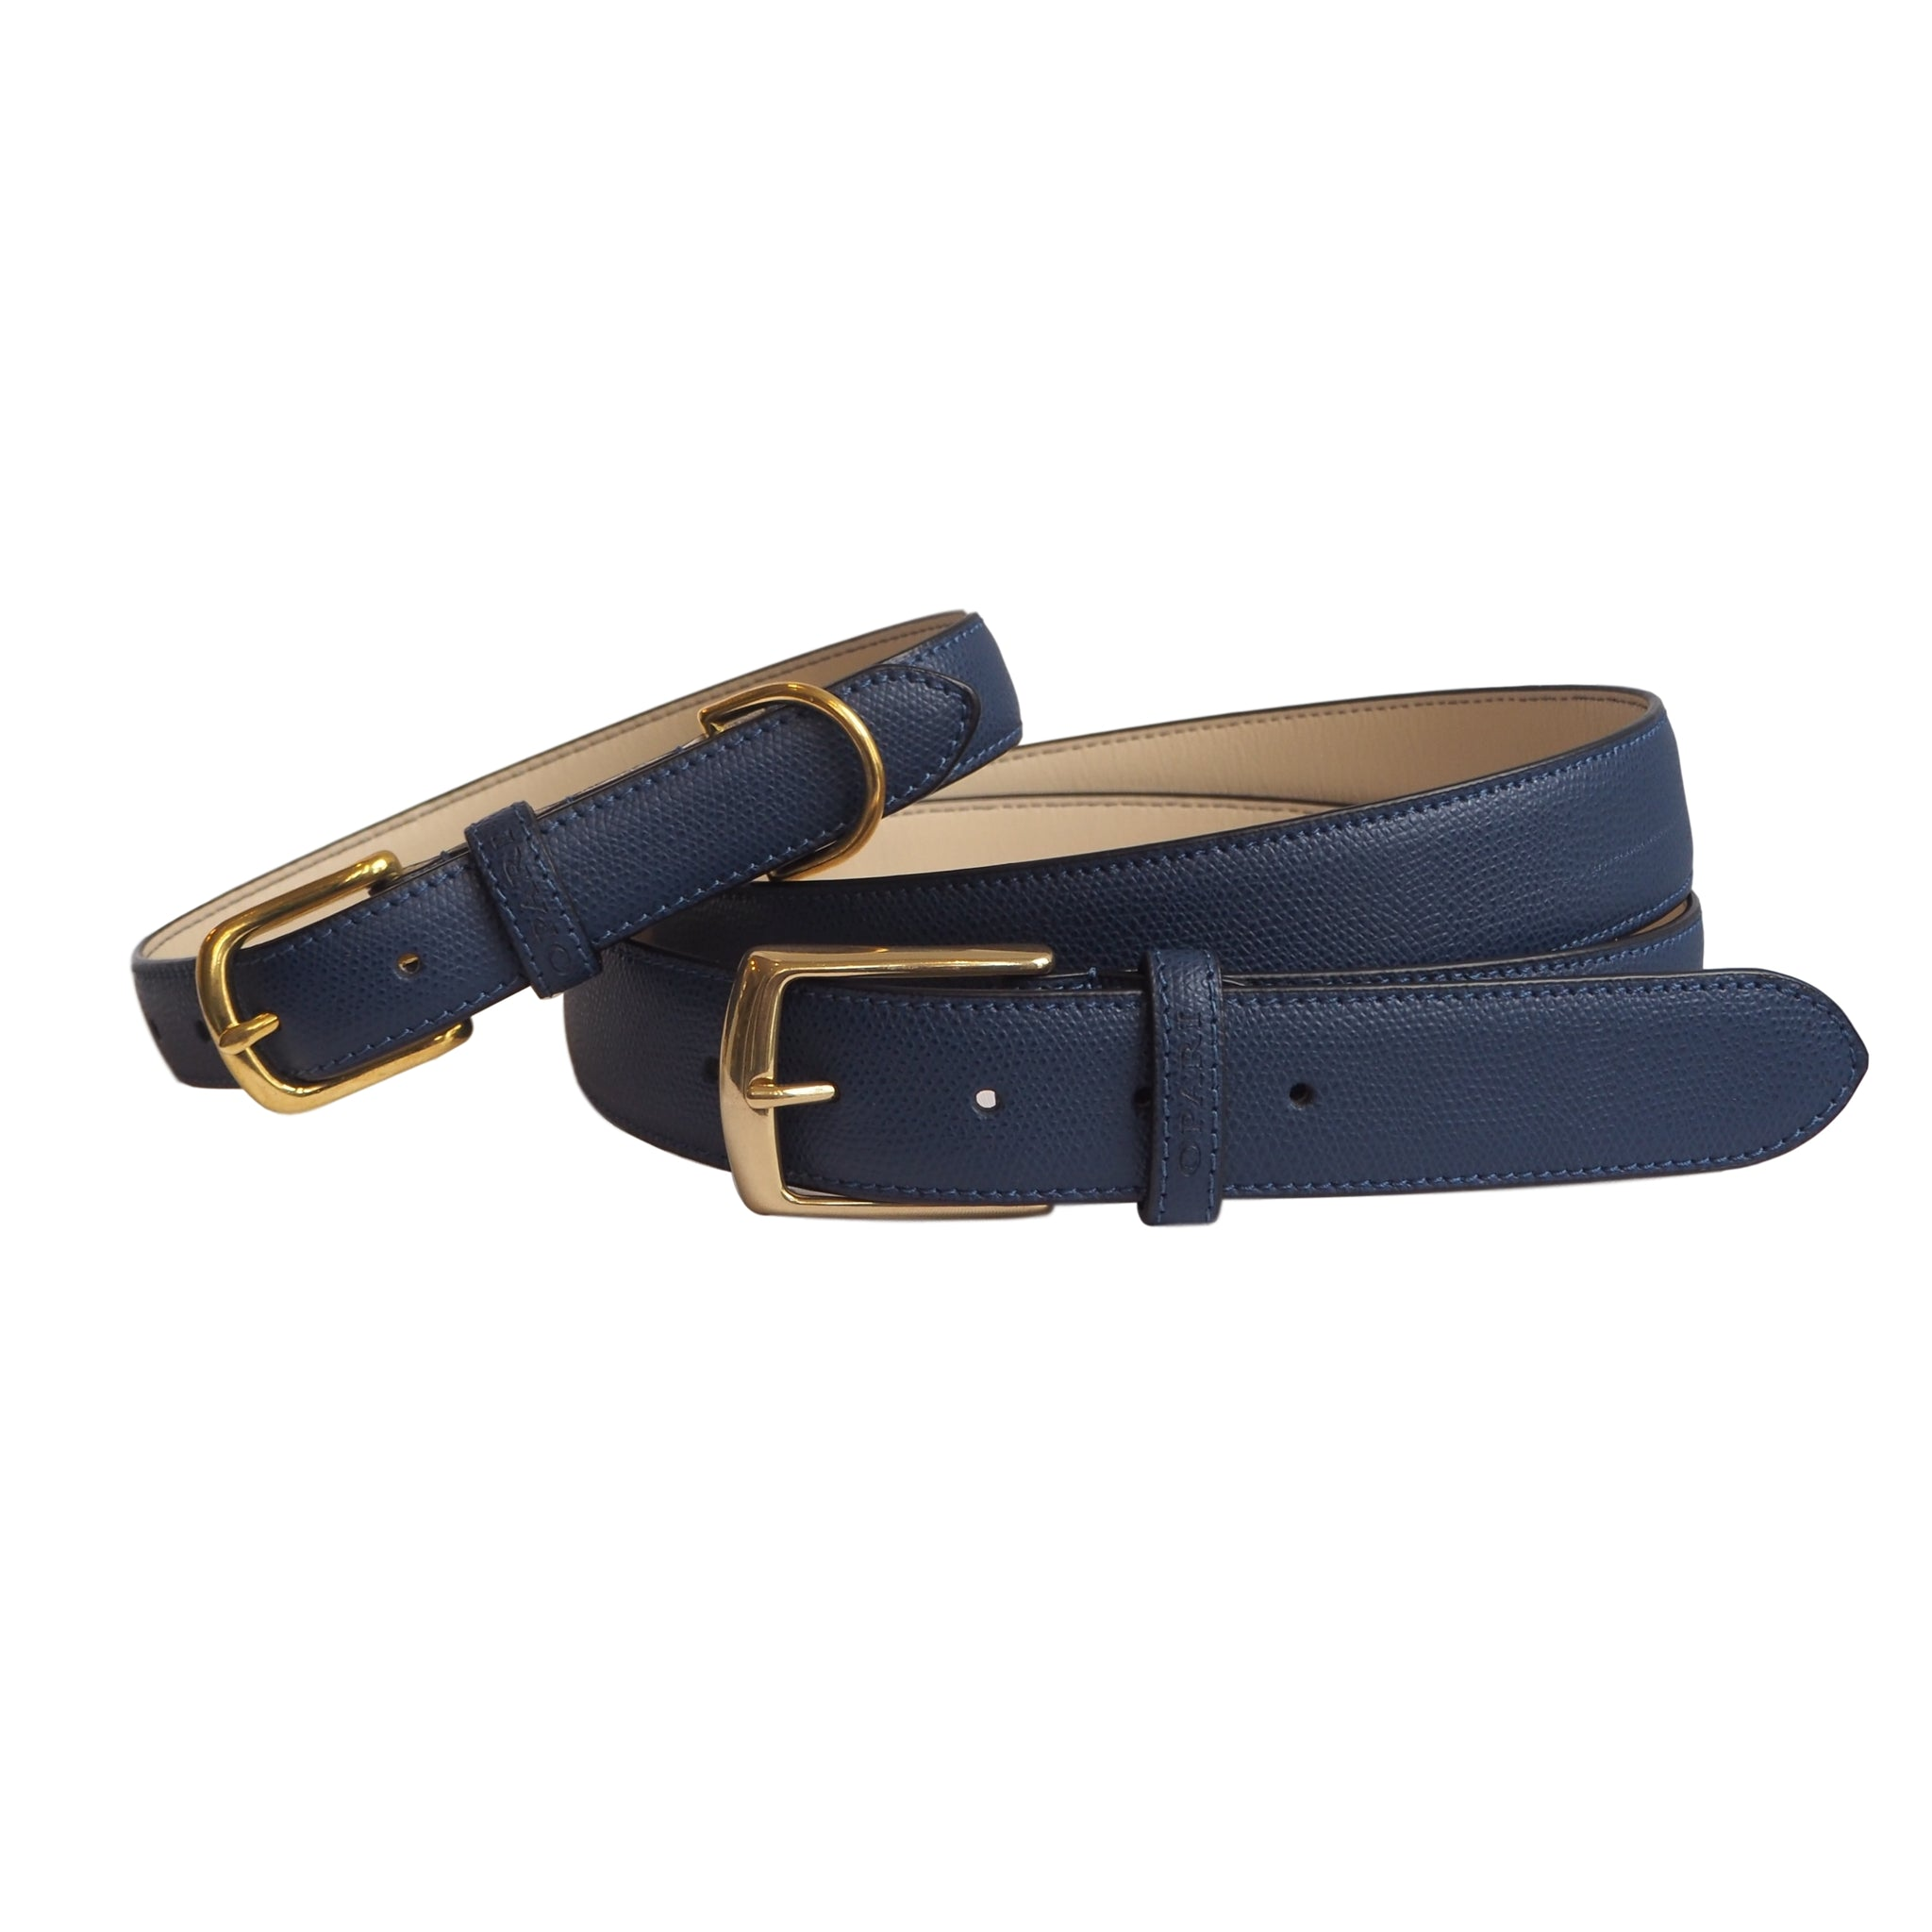 Twinning Luxury Leather Belt and Matching Dog Collar by Opari